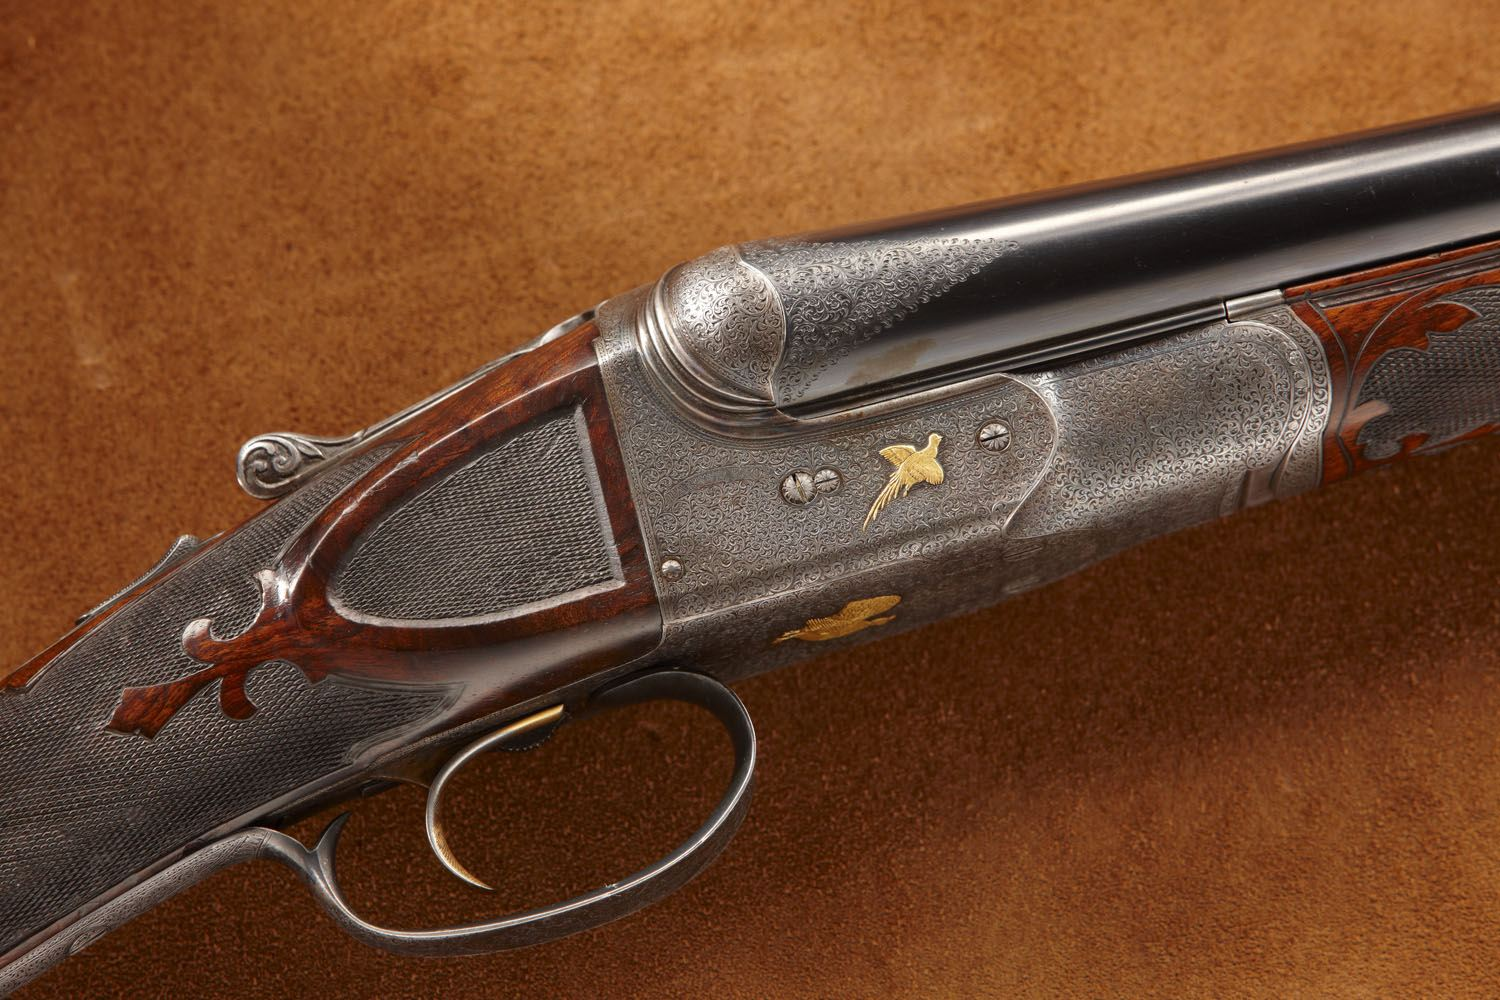 Parker's Invincibles: The Finest American Shotguns (1 of 3)